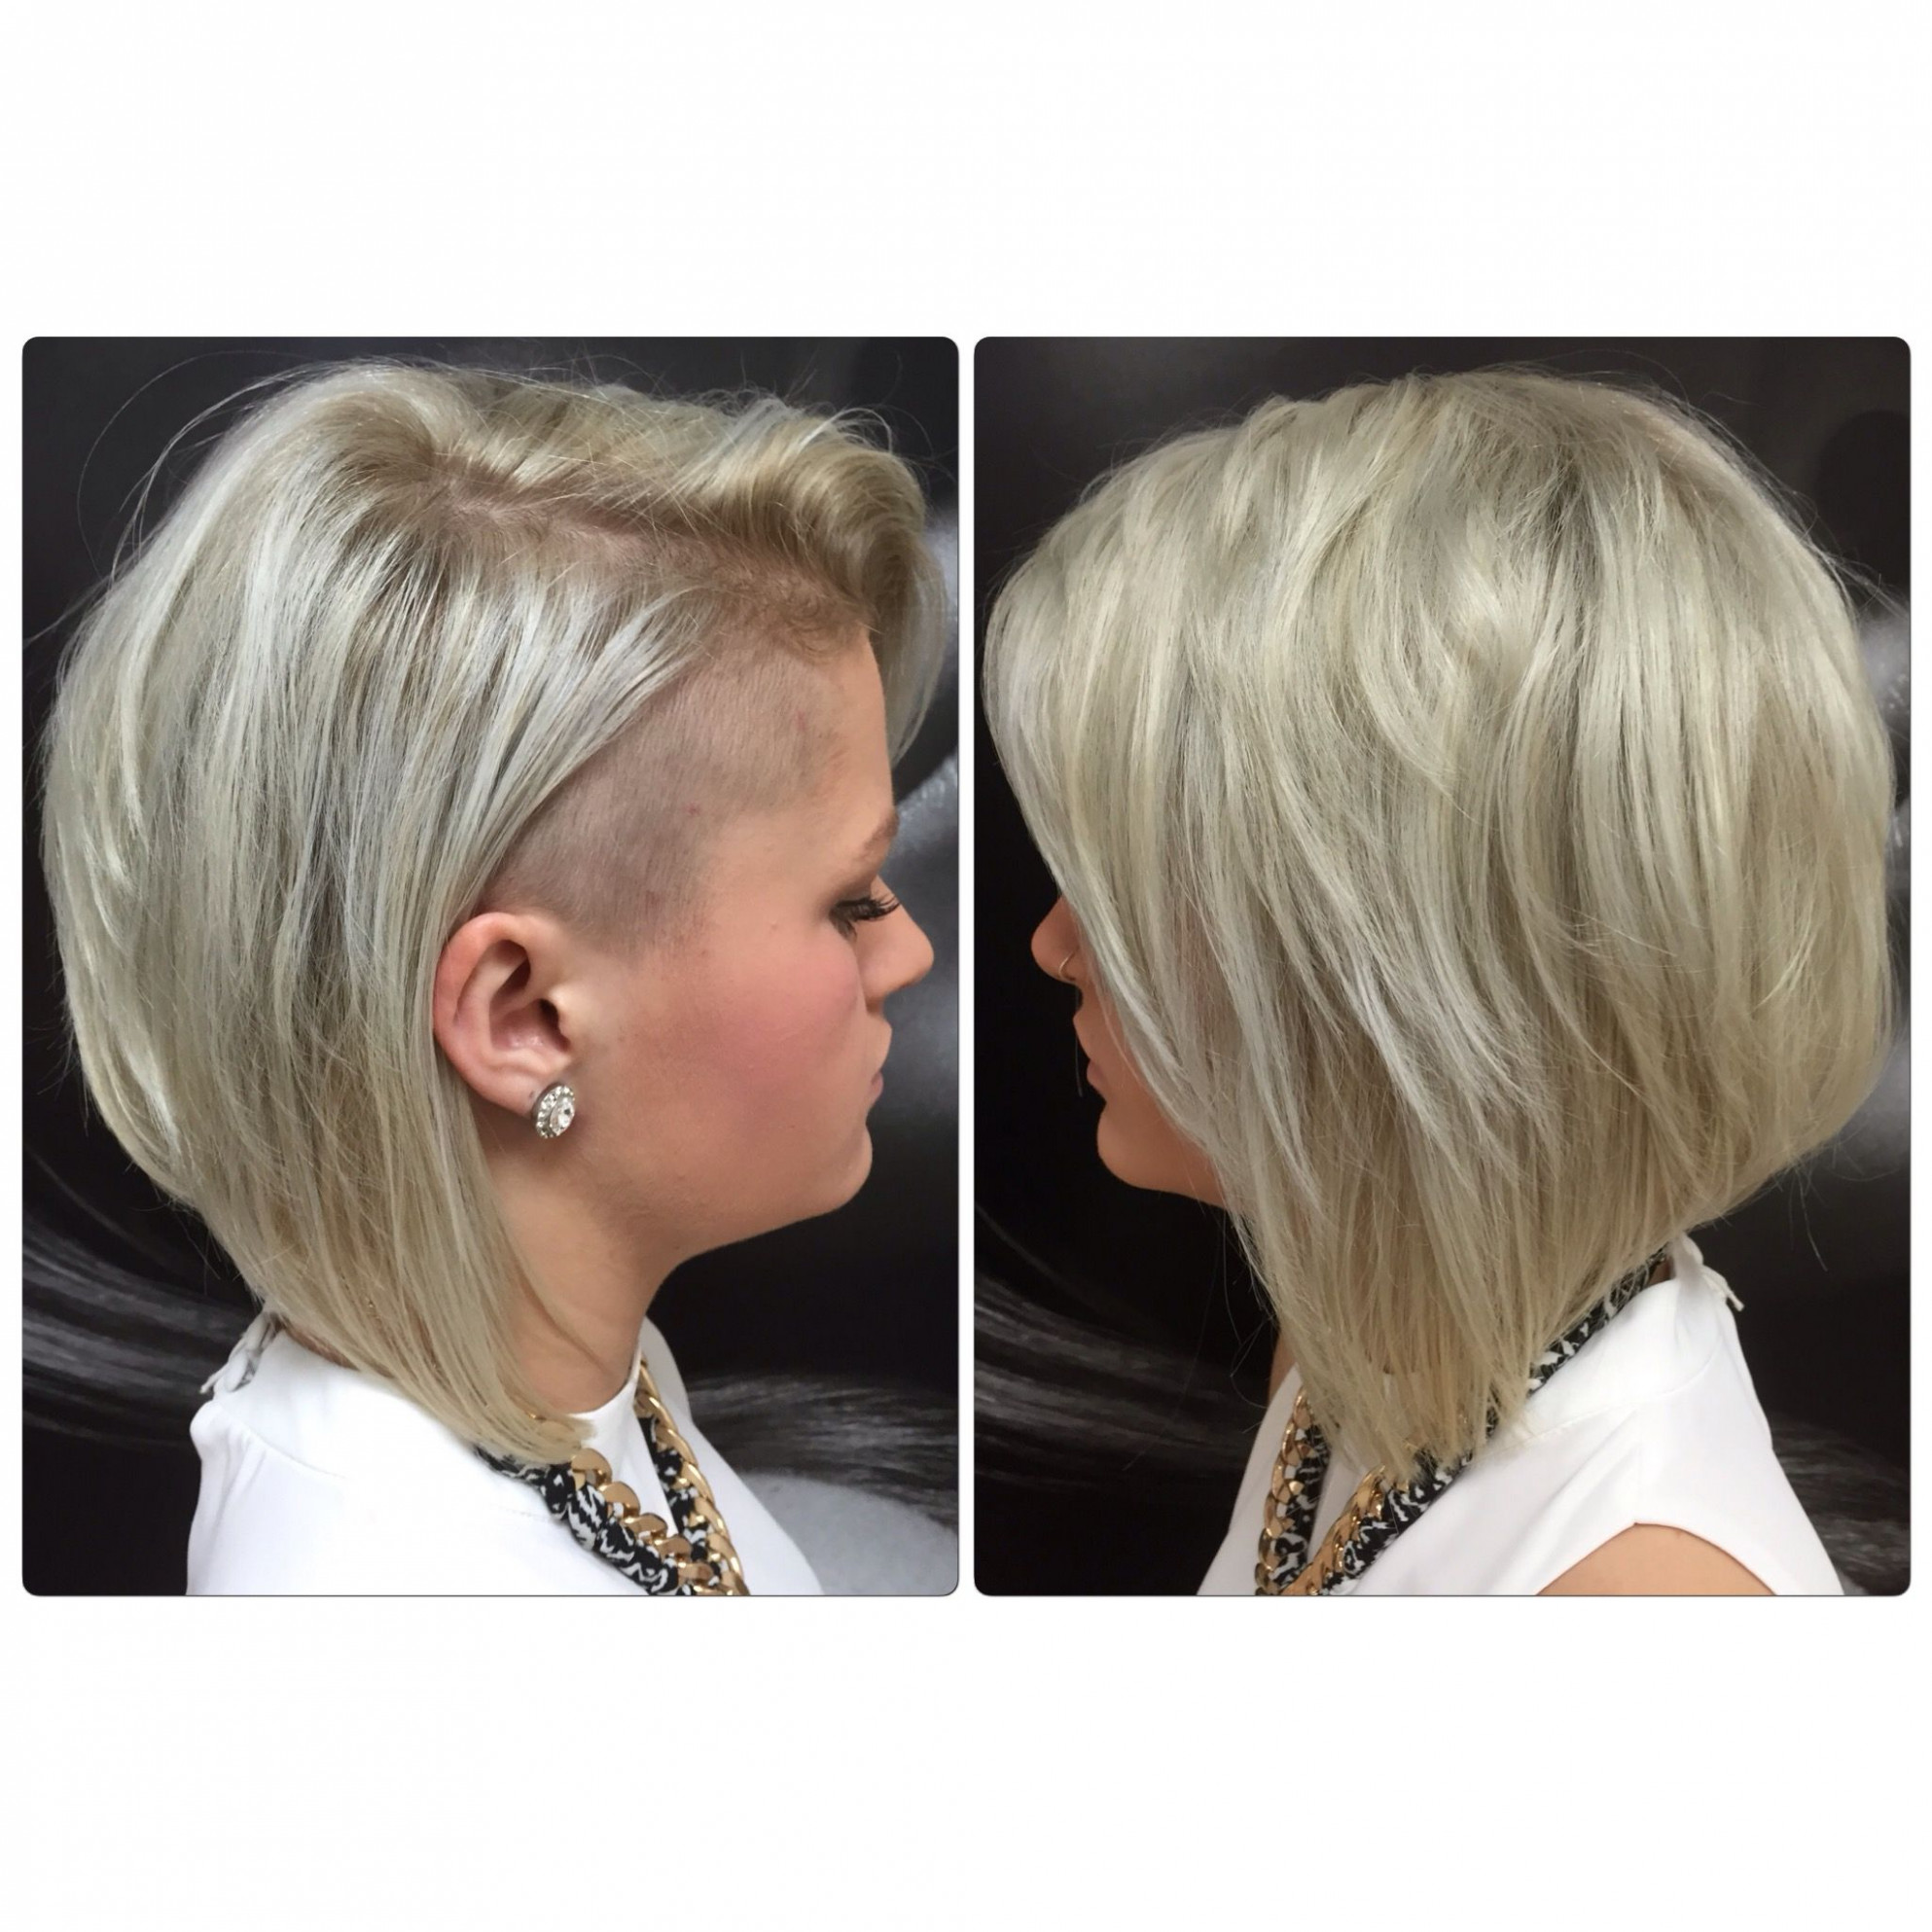 Concave platinum bob shaved side | hair by kirsty | shaved side